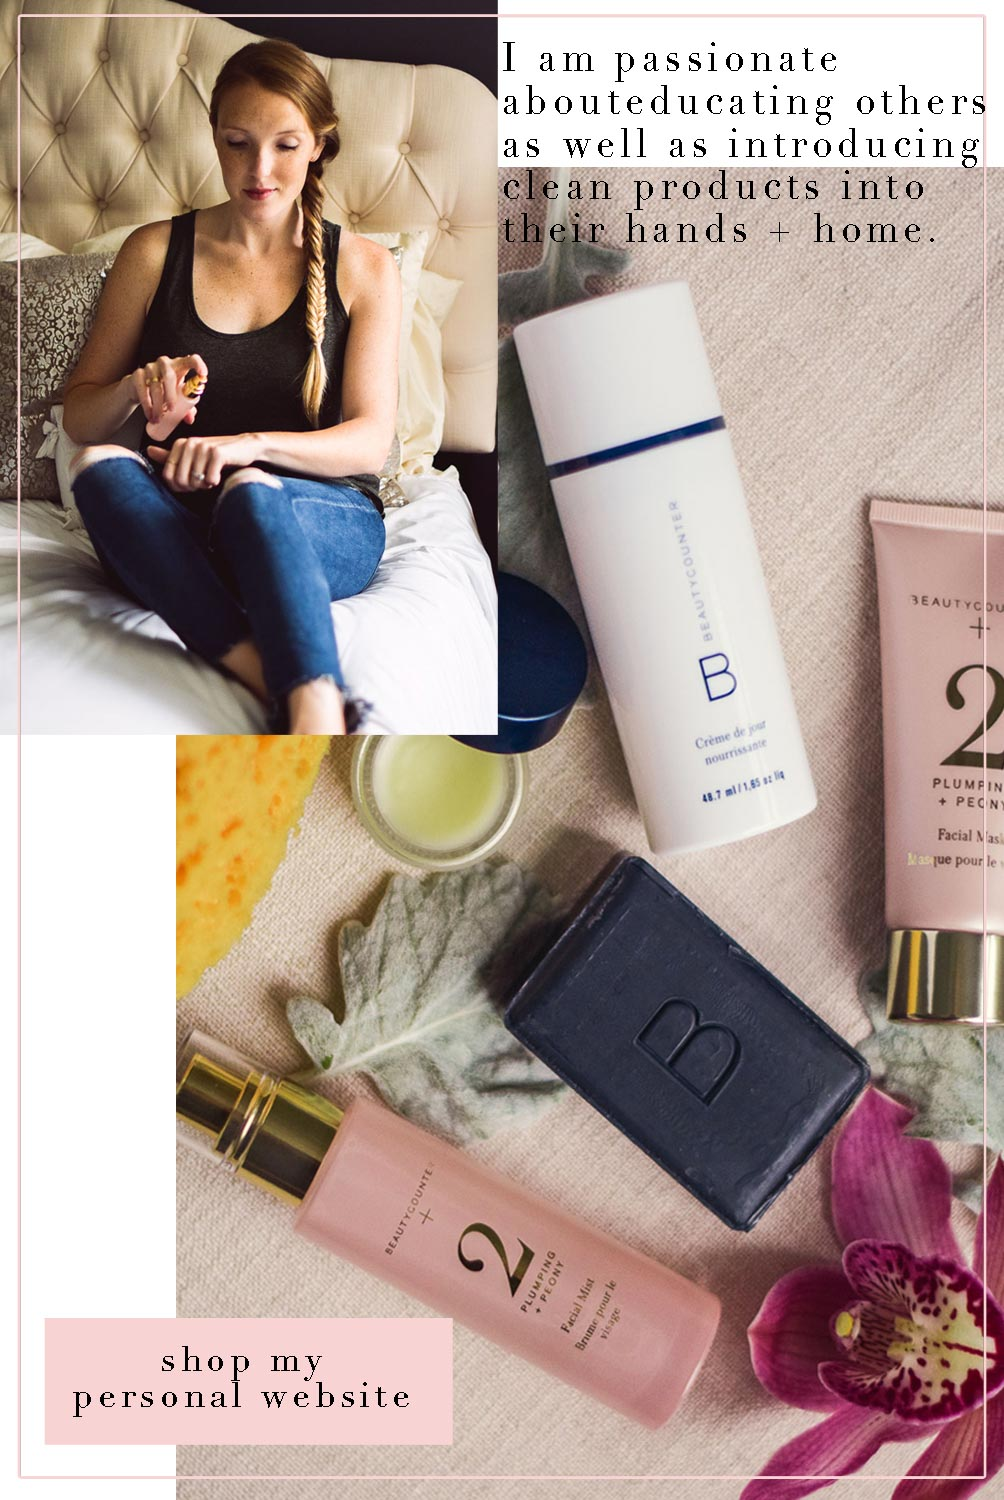 About_BeautyCounter-2